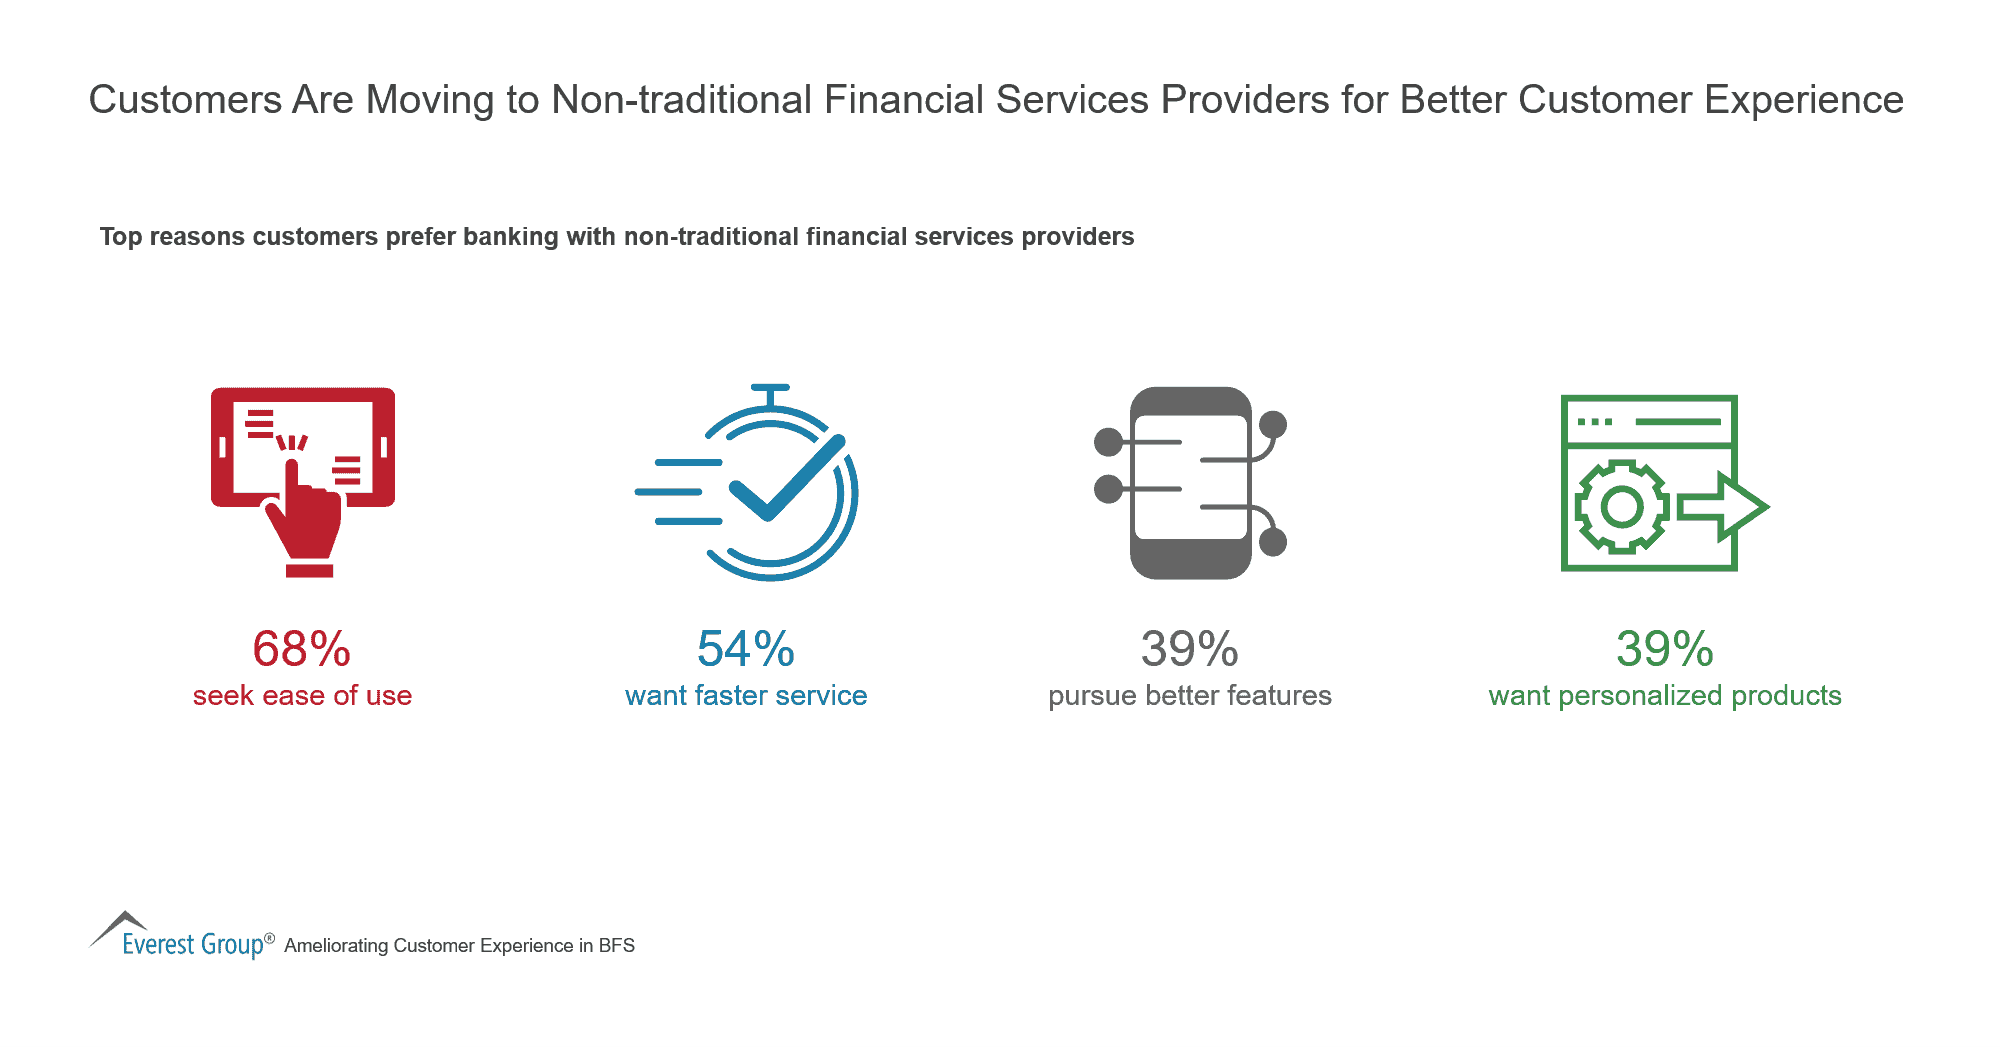 Customers Are Moving to Non-traditional Financial Services Providers for Better Customer Experience